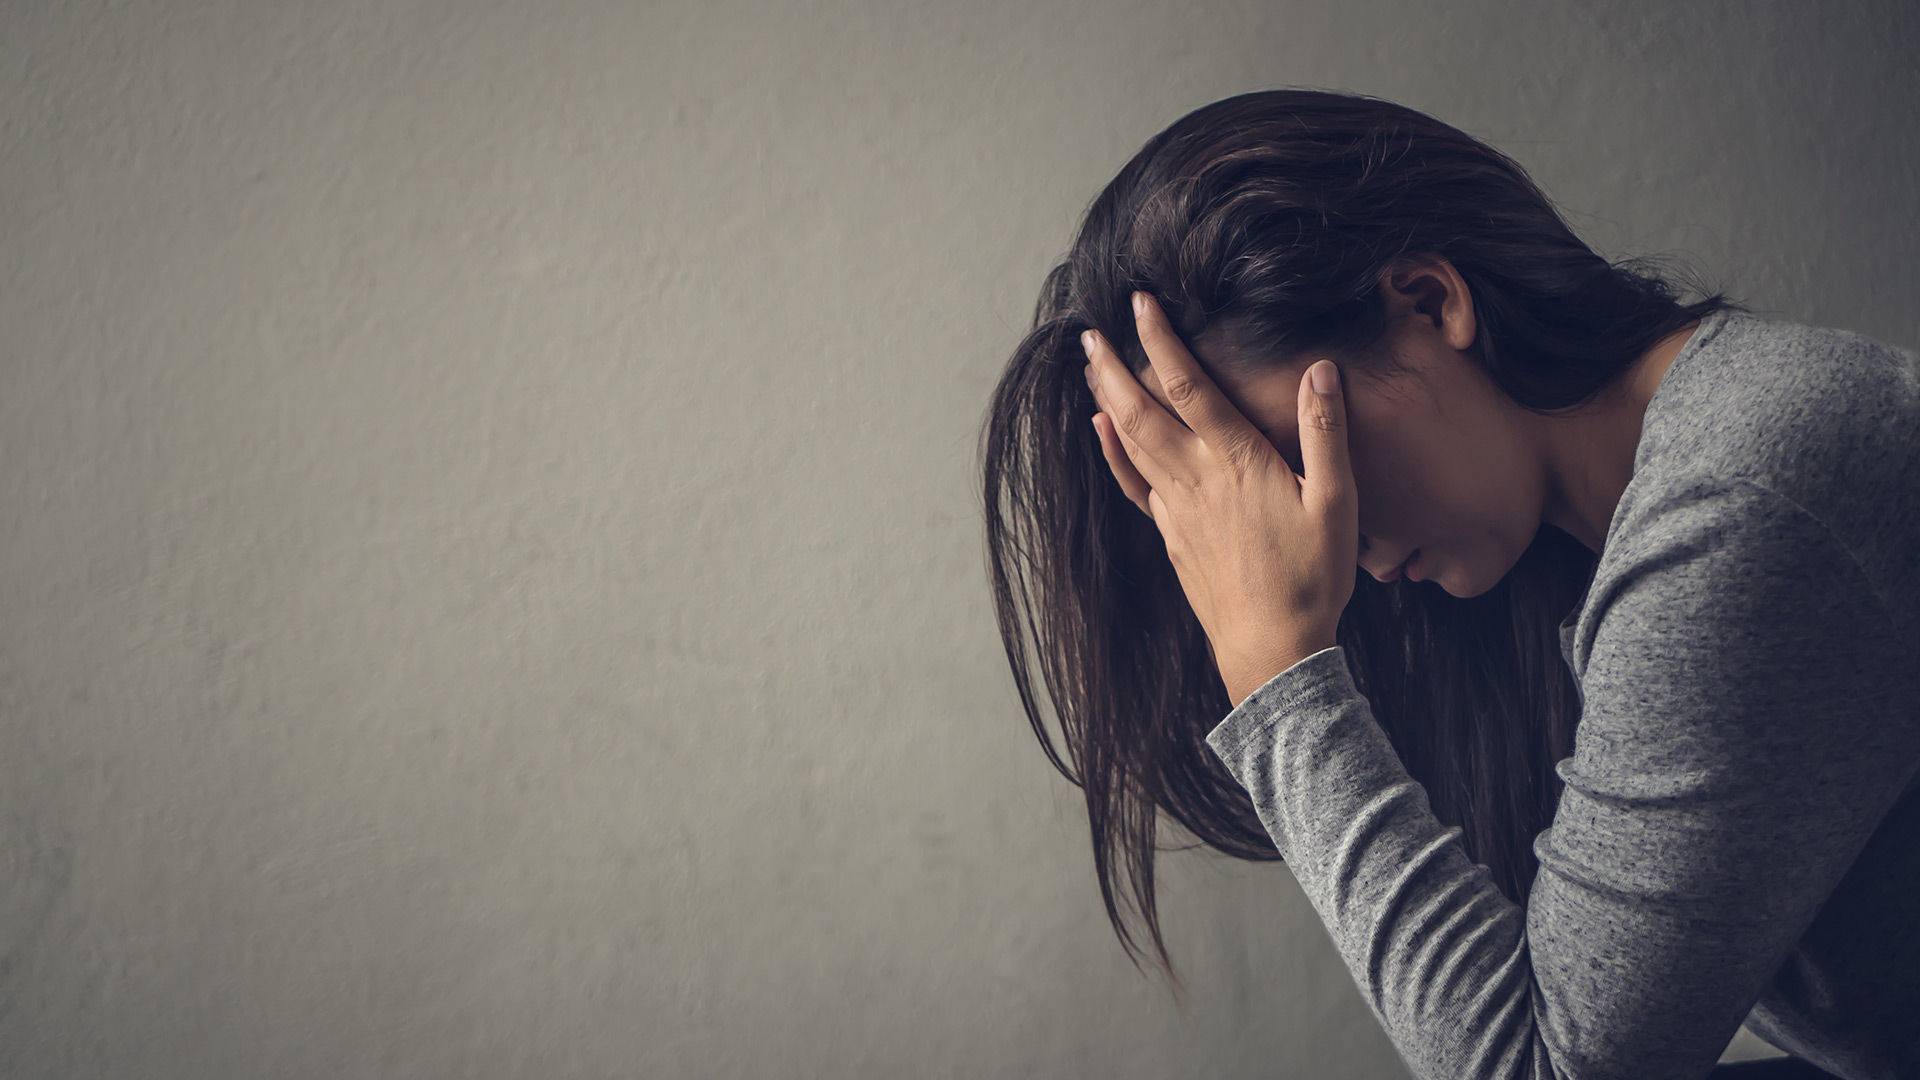 Even as COVID-19 restrictions ease, pandemic stress still takes a toll on our mental health.